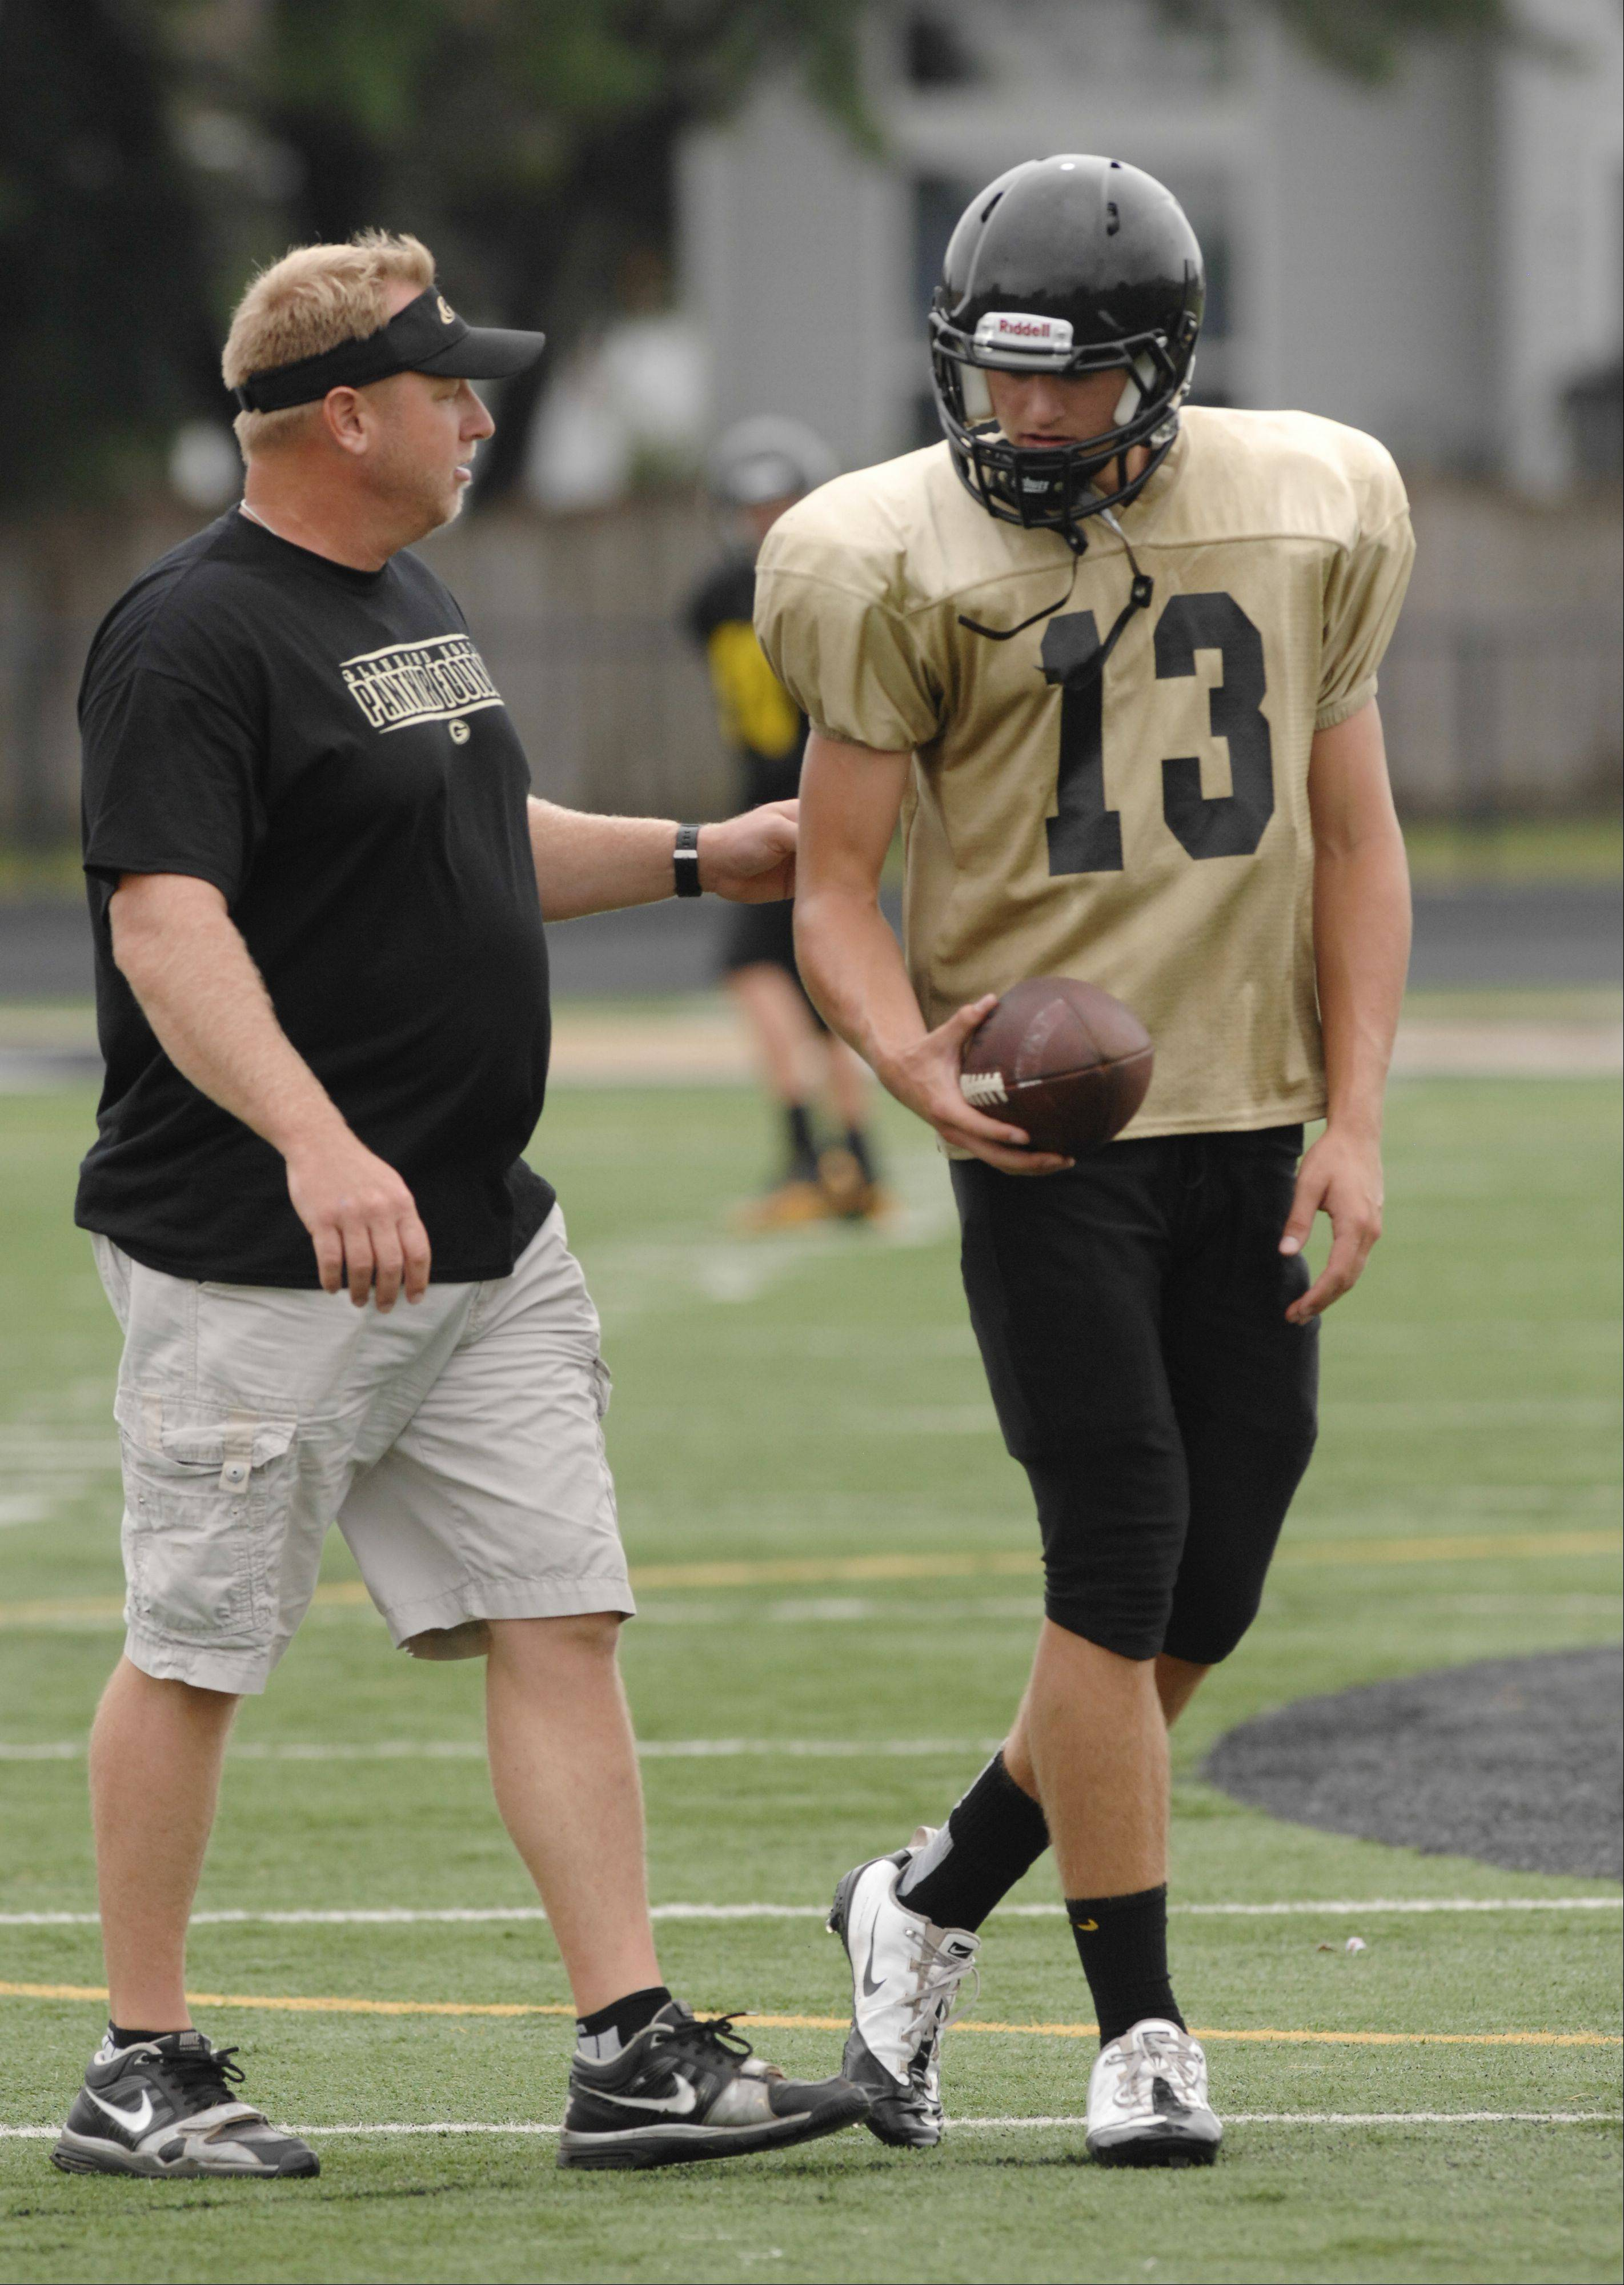 Glenbard North football coach Ryan Wilkens talk with quarterback Brett Gasiorowski during a recent practice. The Panthers might soon drop to Class 7A from Class 8A.